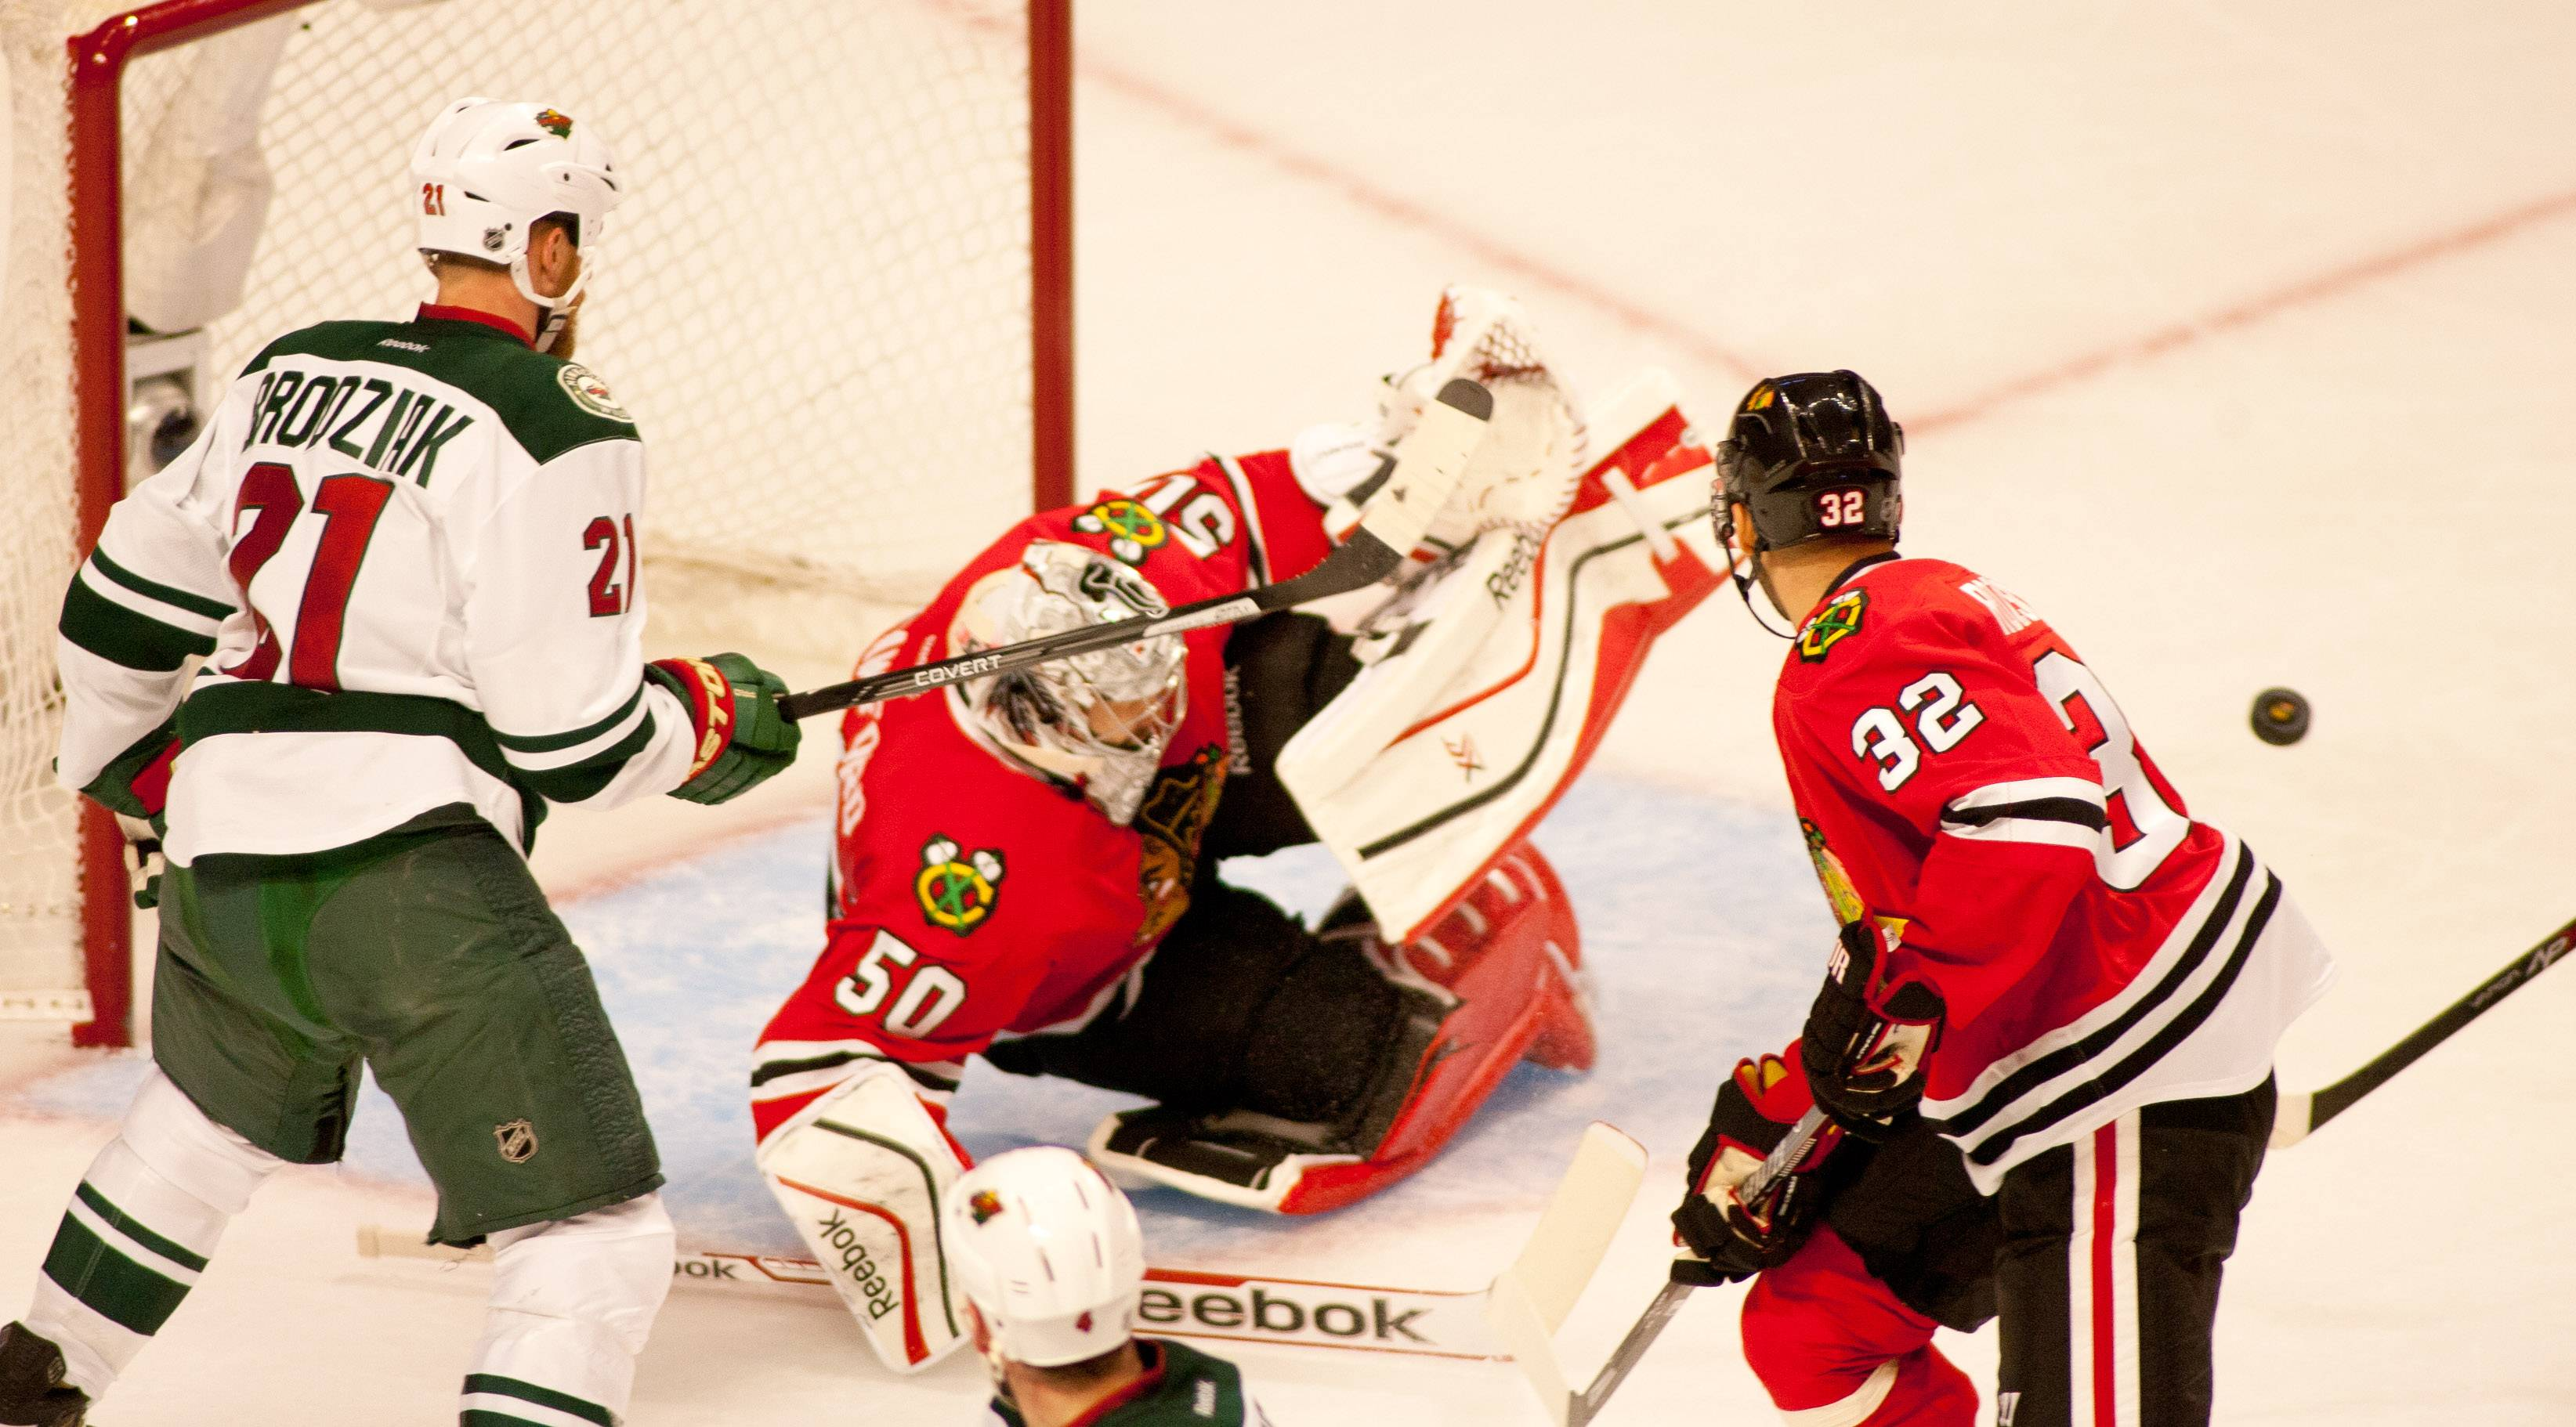 Blackhawks goalie Corey Crawford makes a second-period save in Game 1 against the Minnesota Wild.